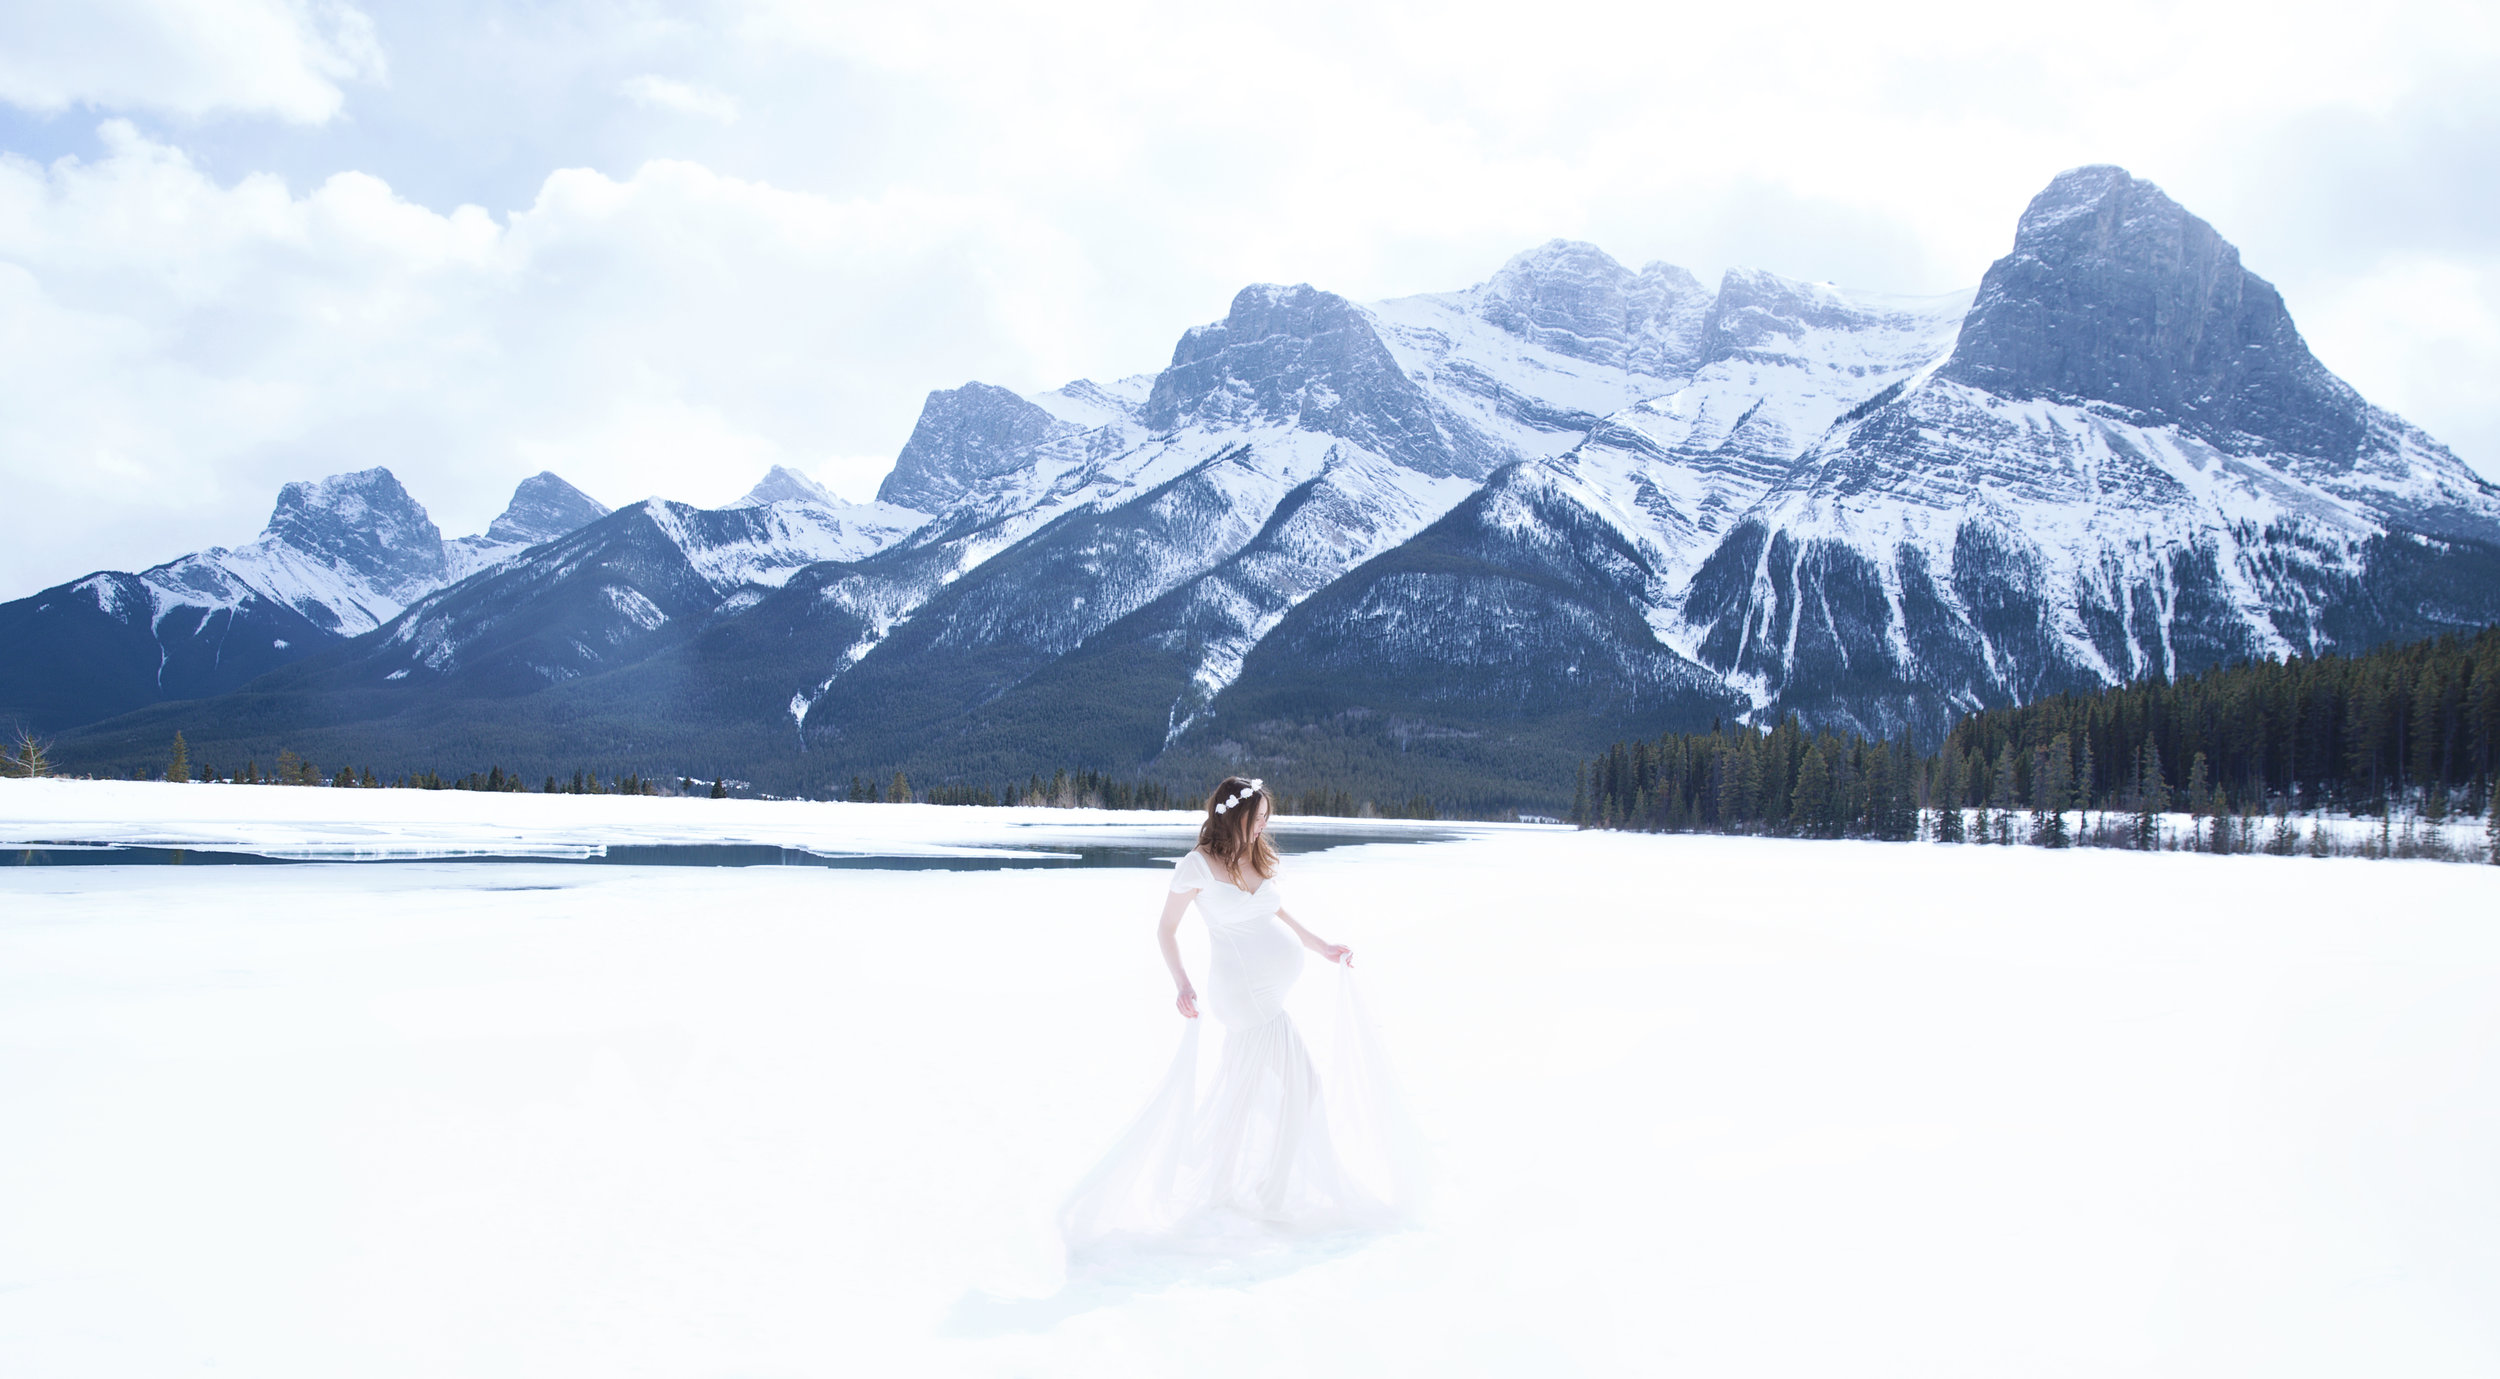 Winter mountain maternity session in Kananaskis Country. Mother-to-be in a white gown. Alberta photographer.